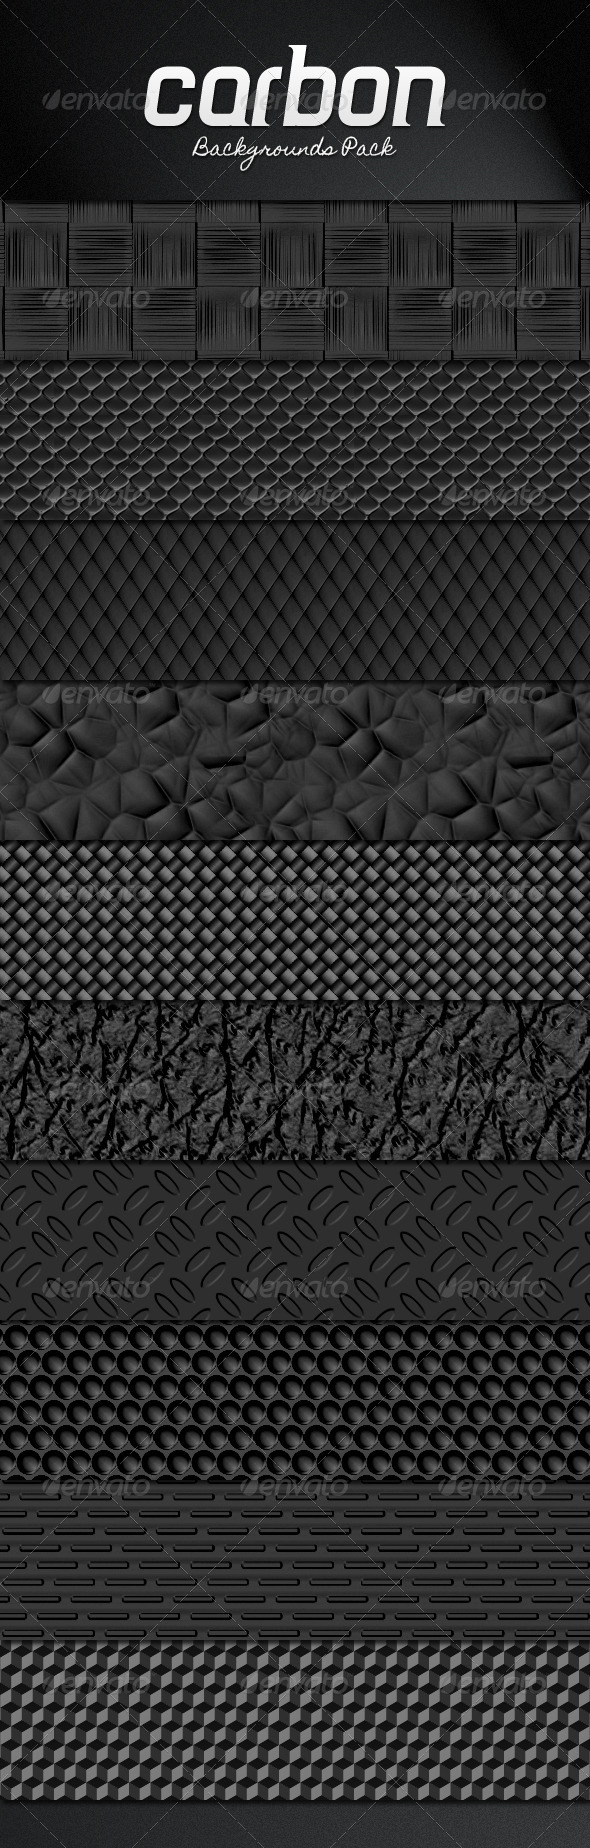 Carbon Backgrounds Pack - Patterns Backgrounds